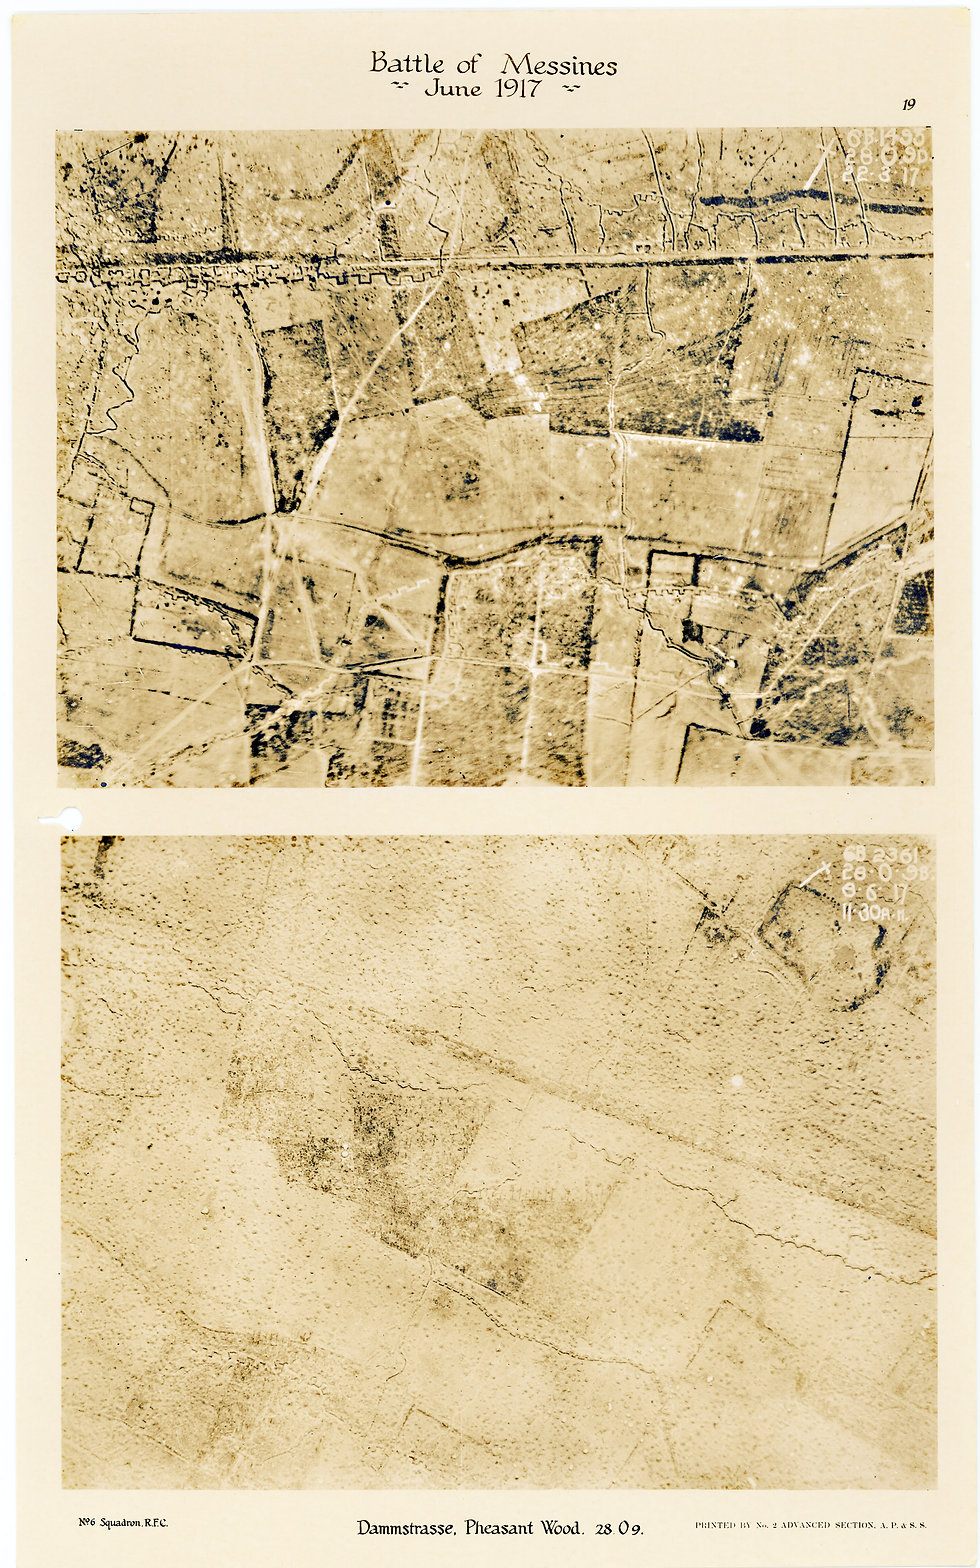 6 Squadron aerial photos of Dammstrasse and Pheasant Wood, taken by 6 Squadron before and after the Battle of Messines, 1917